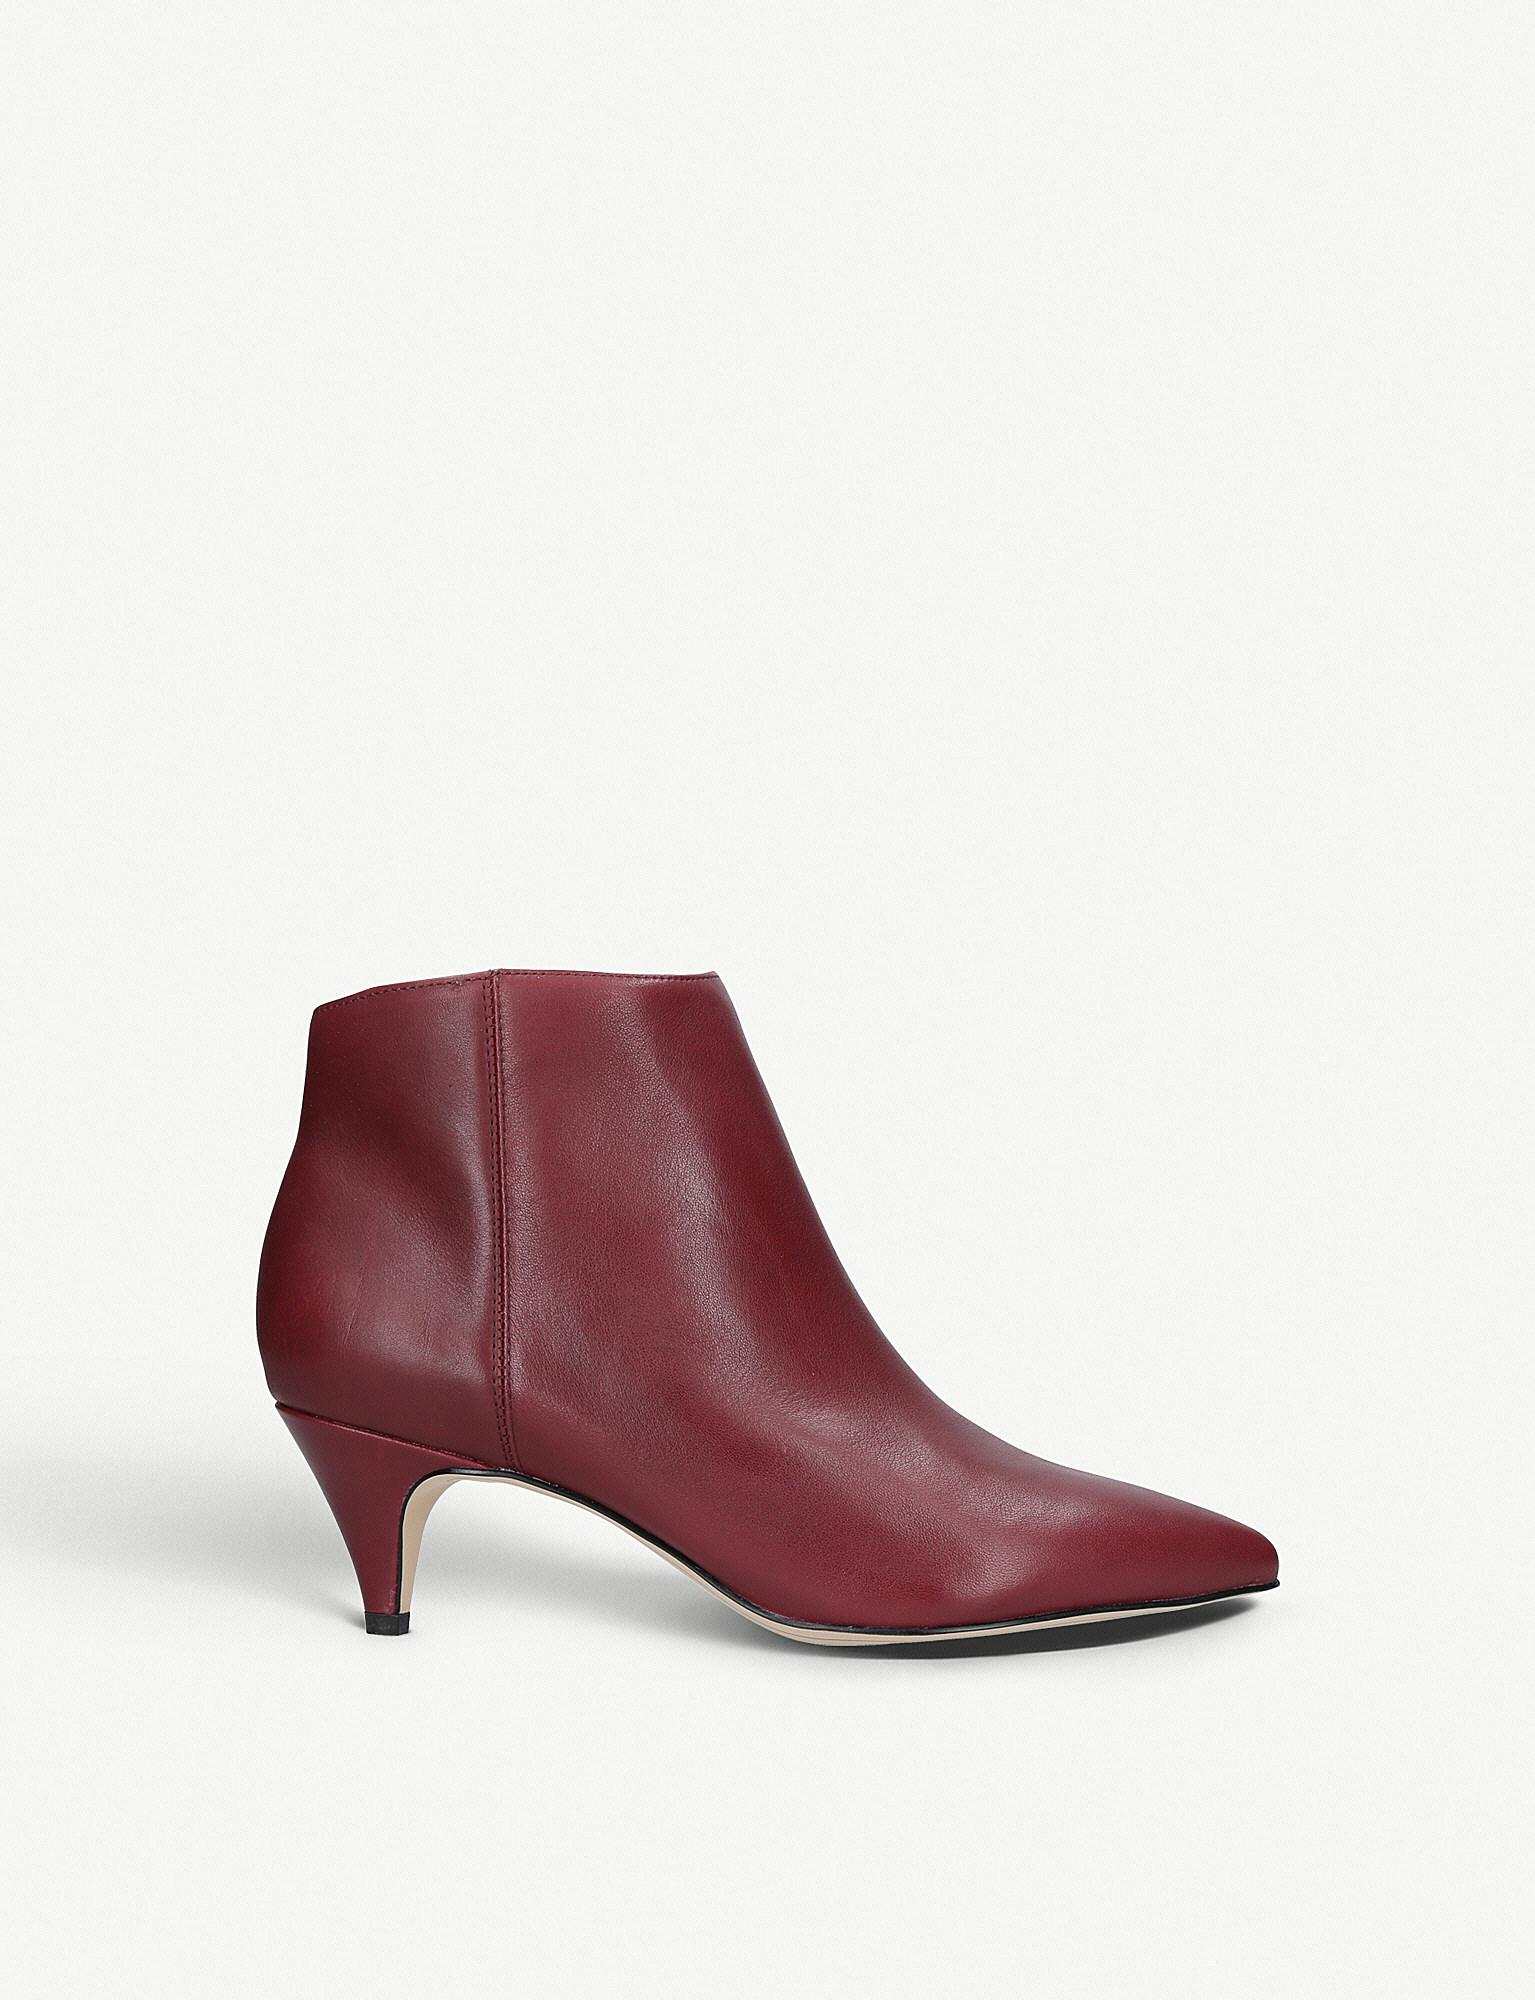 026d8603f4c6 Sam Edelman Kinzey Leather Ankle Boots in Red - Lyst